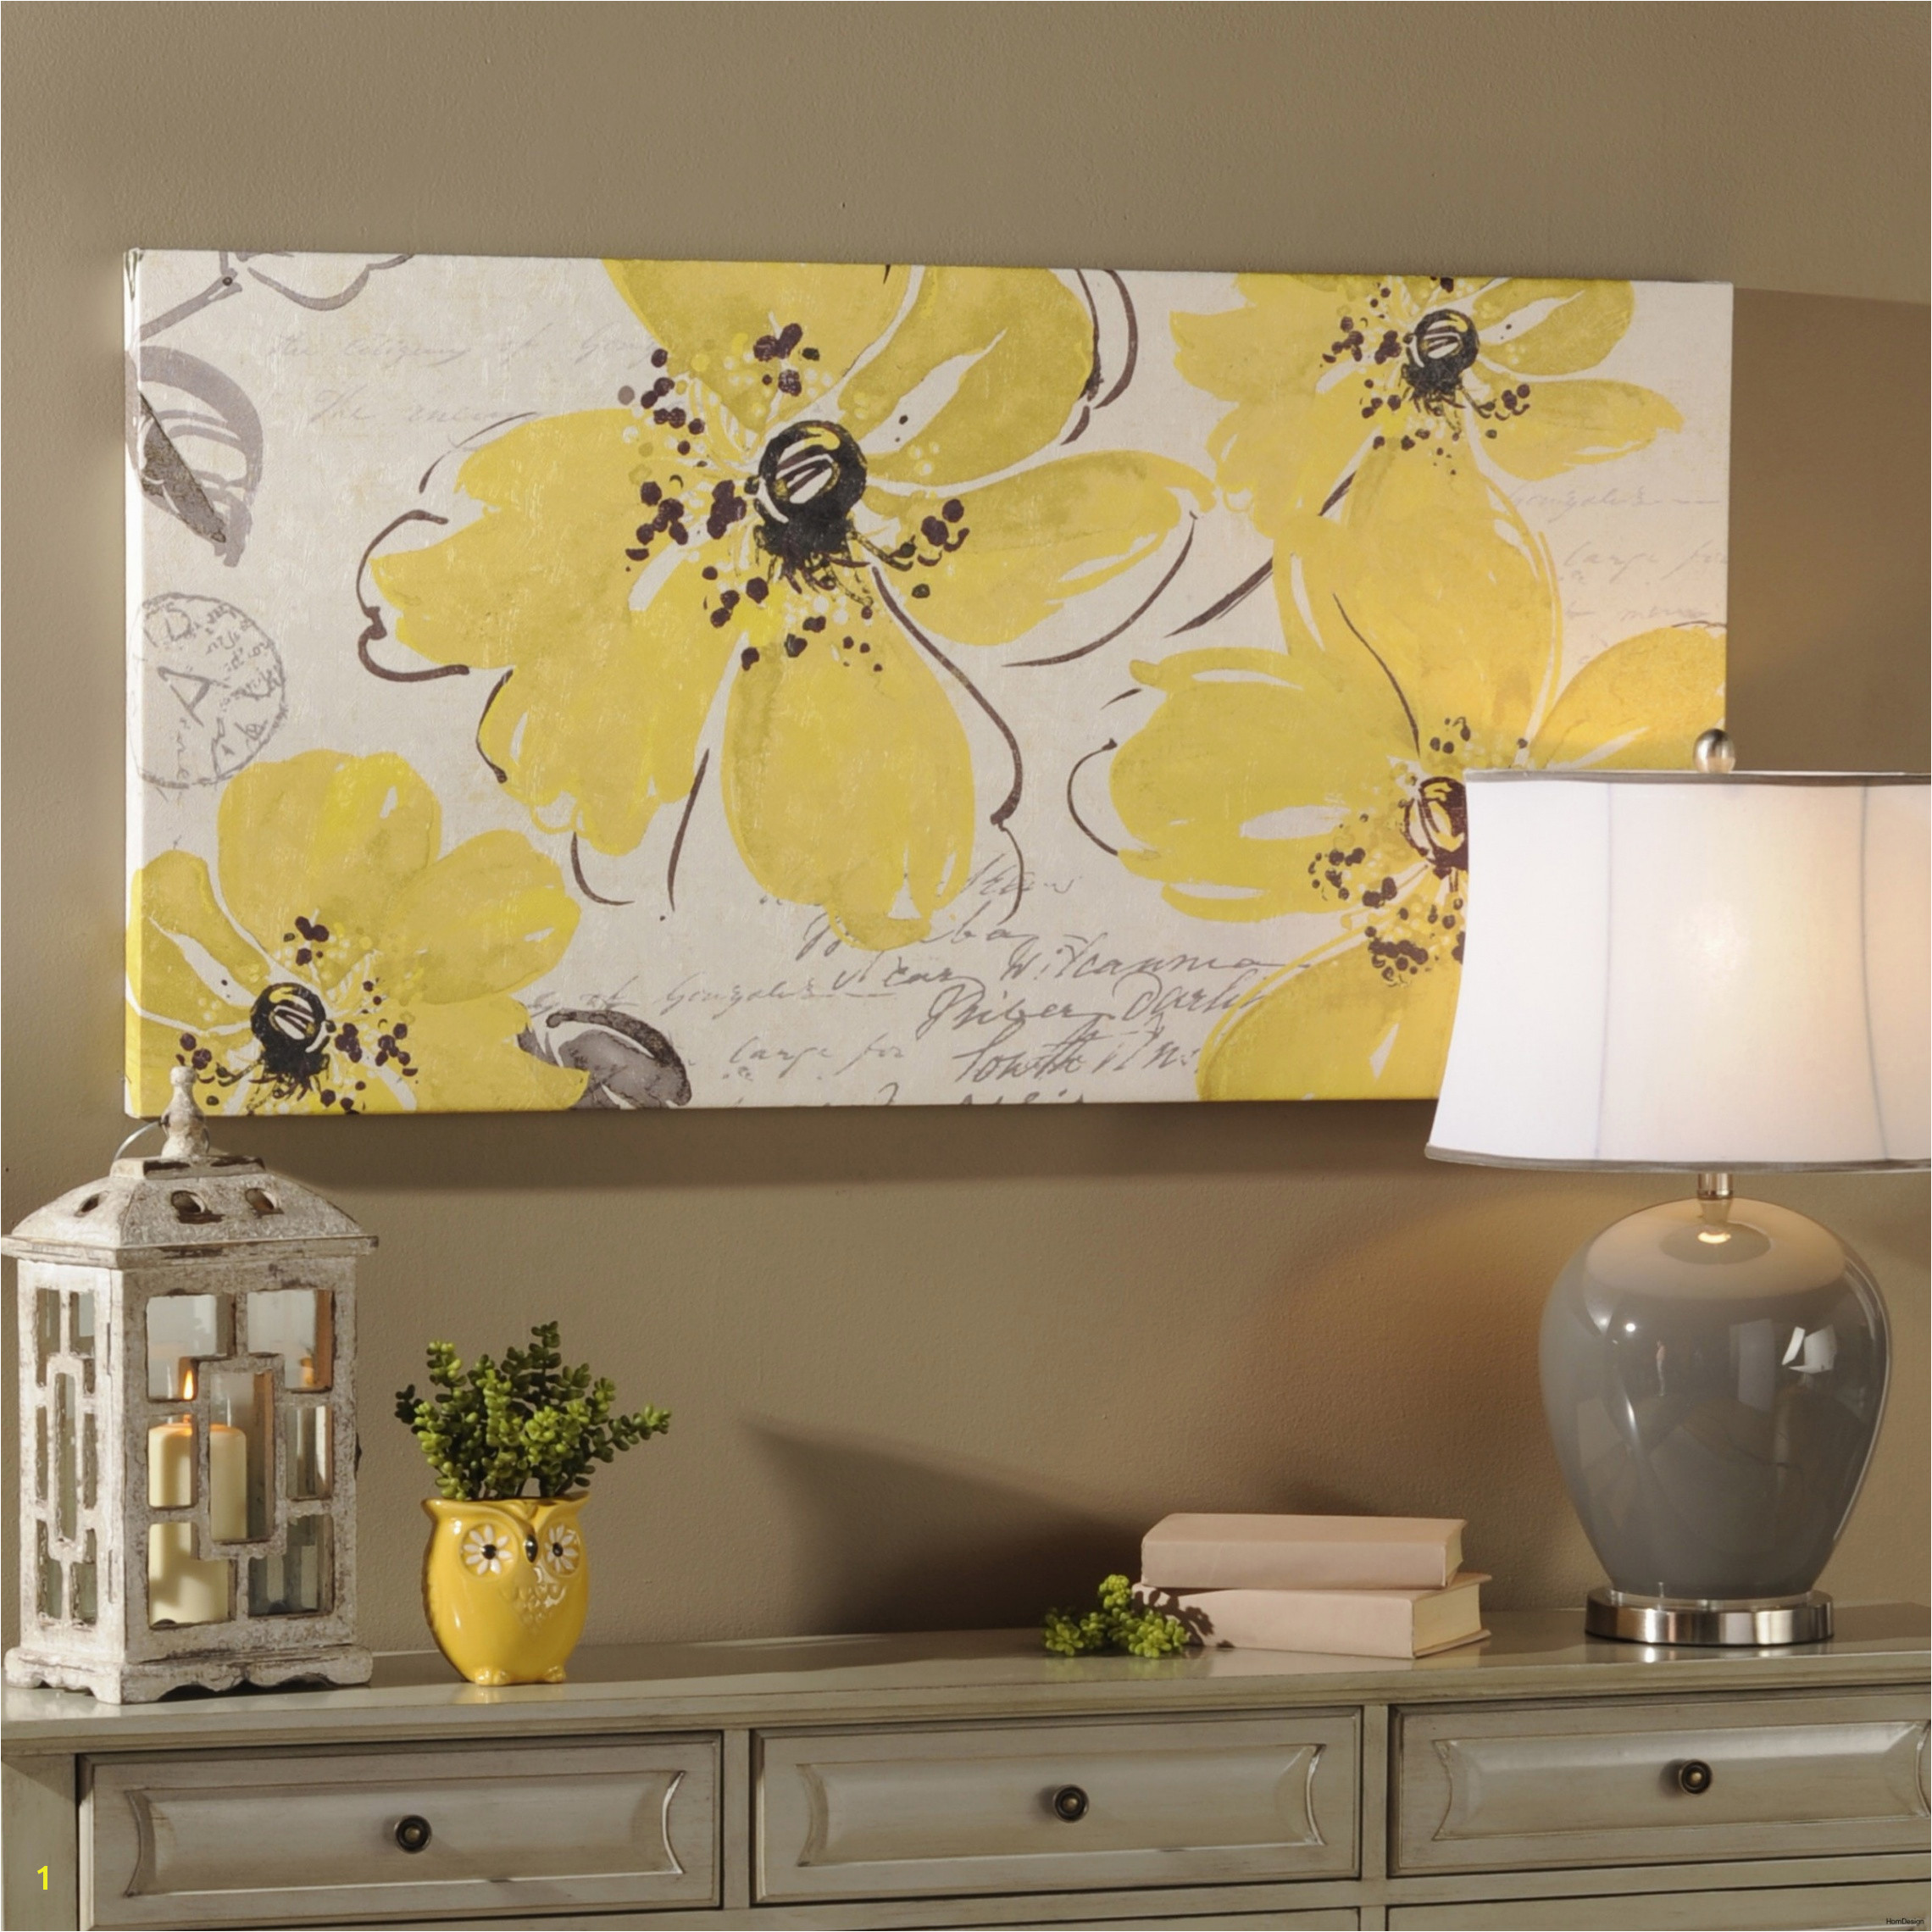 What is A Wall Mural Wall Decal Luxury 1 Kirkland Wall Decor Home Design 0d Outdoor